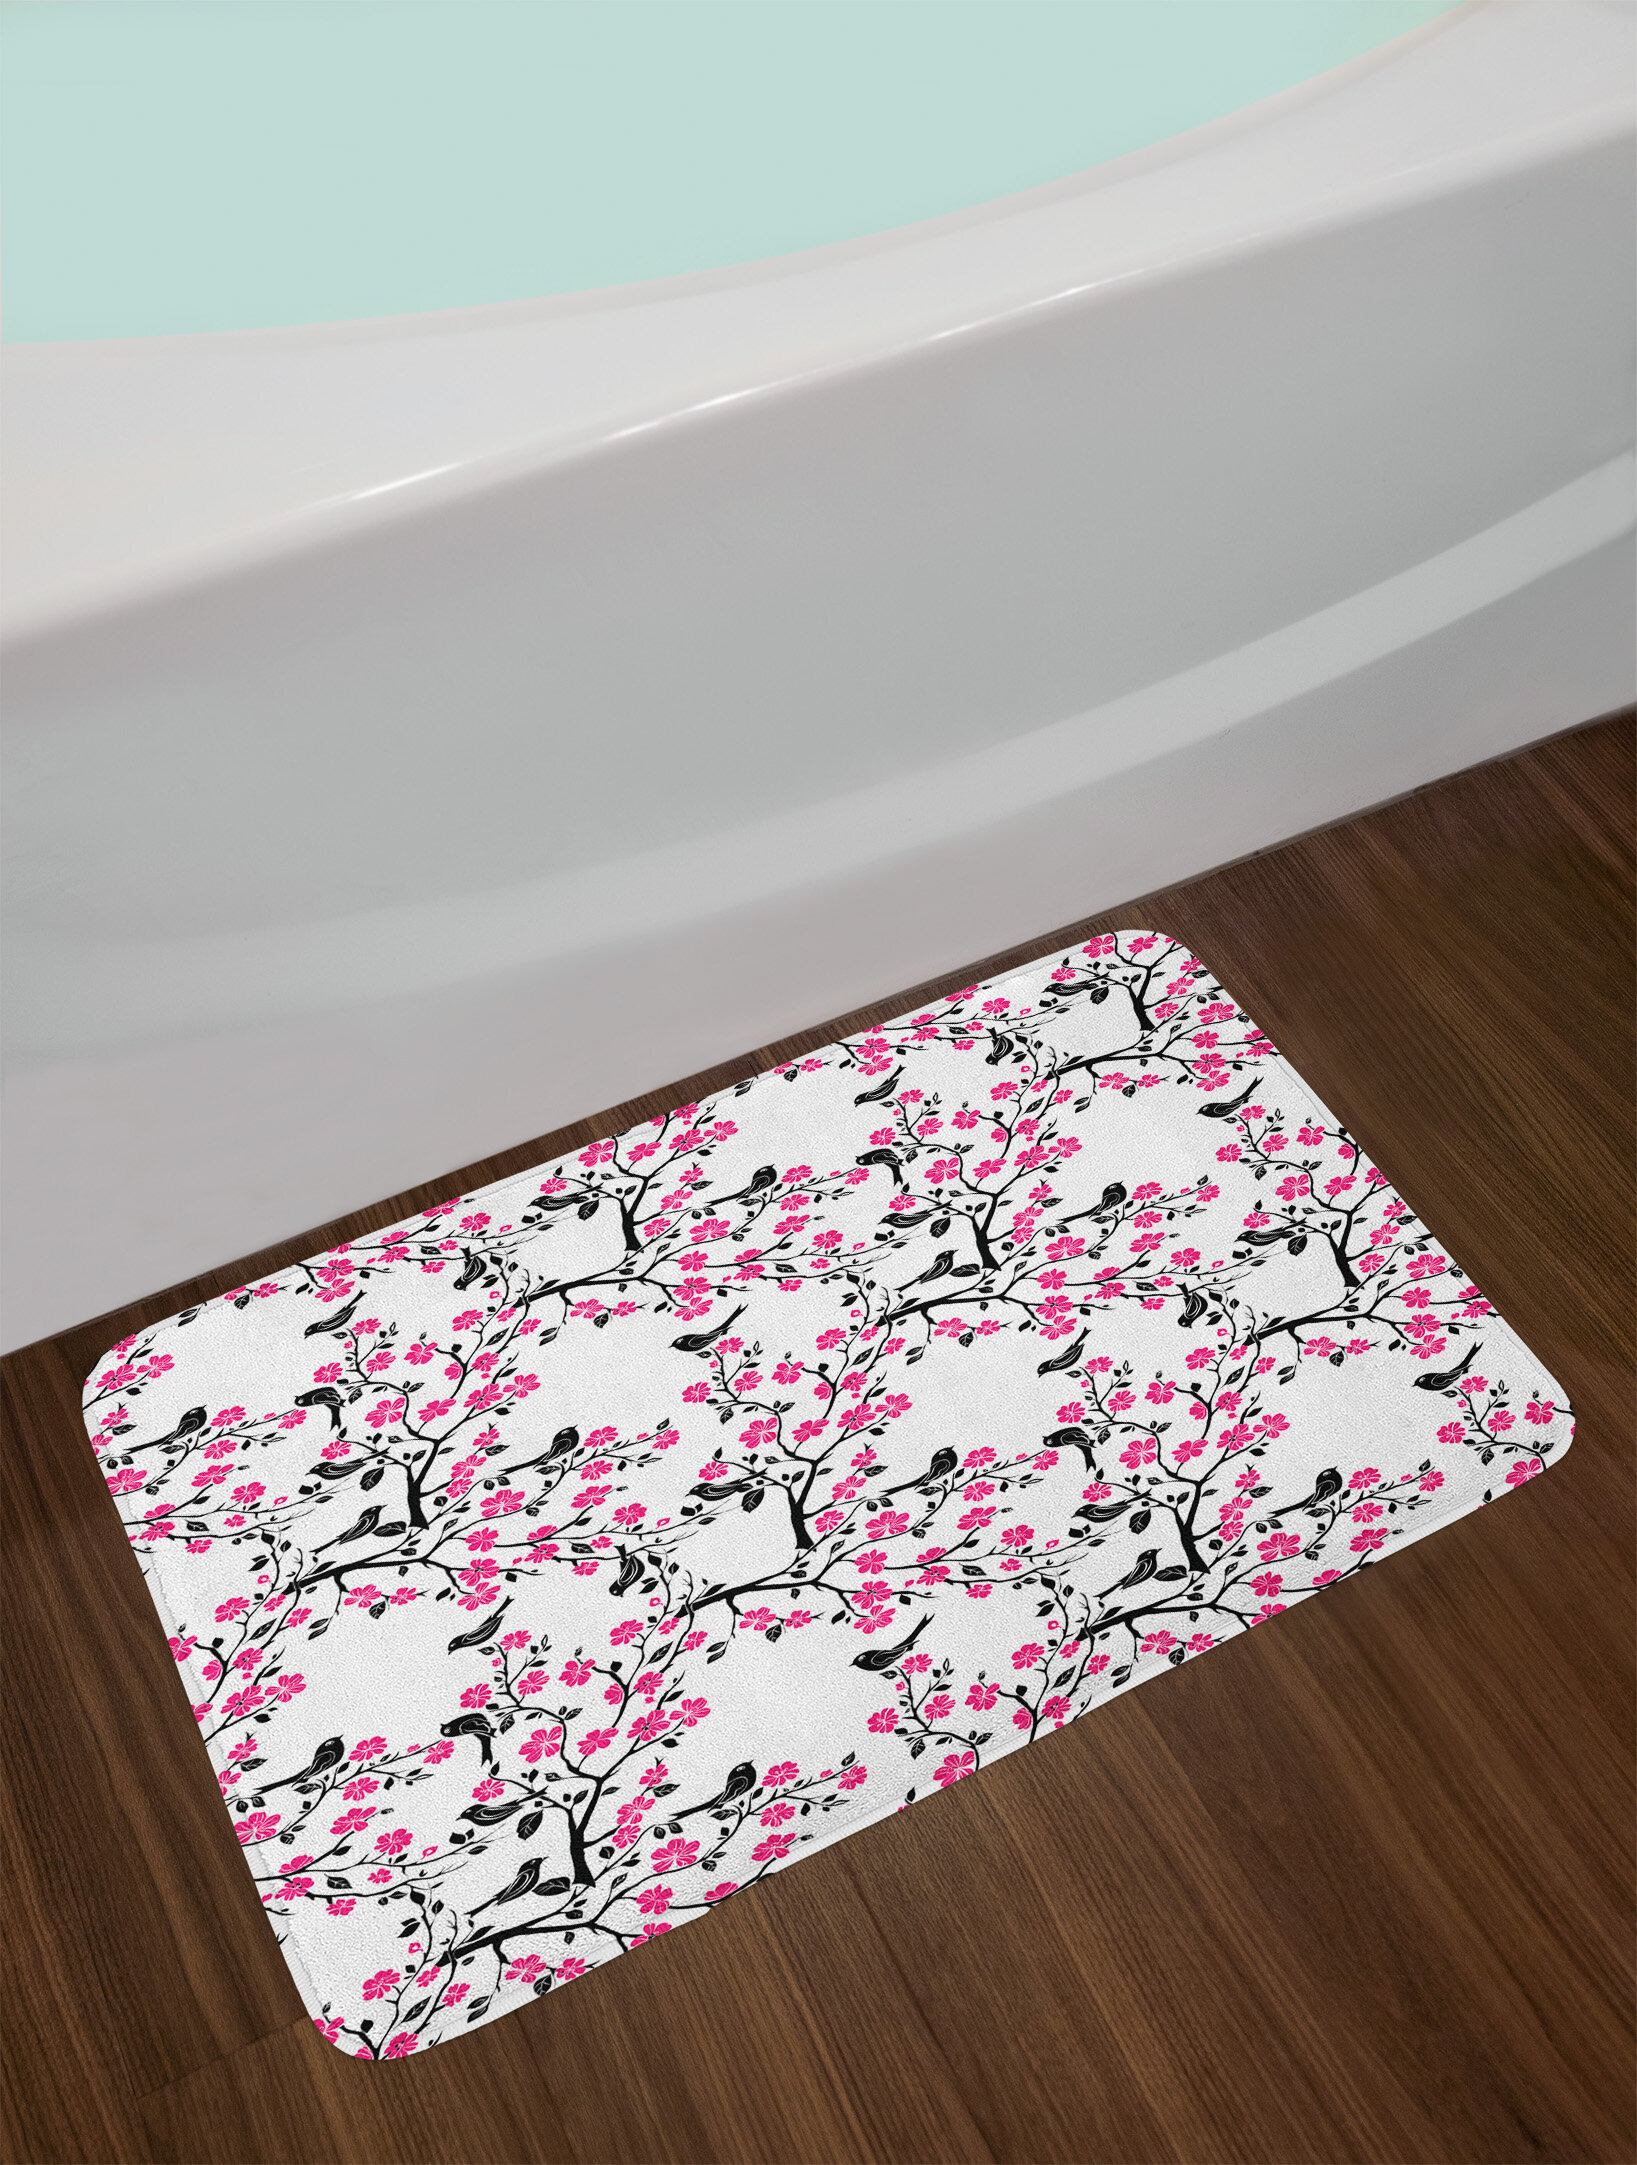 east urban home ambesonne cherry blossom bath mat by sakura tree with flourishing flowers and birds black silhouettes plush bathroom decor mat with non slip backing 295 w x 175 w inches black hot pink white etrl2762